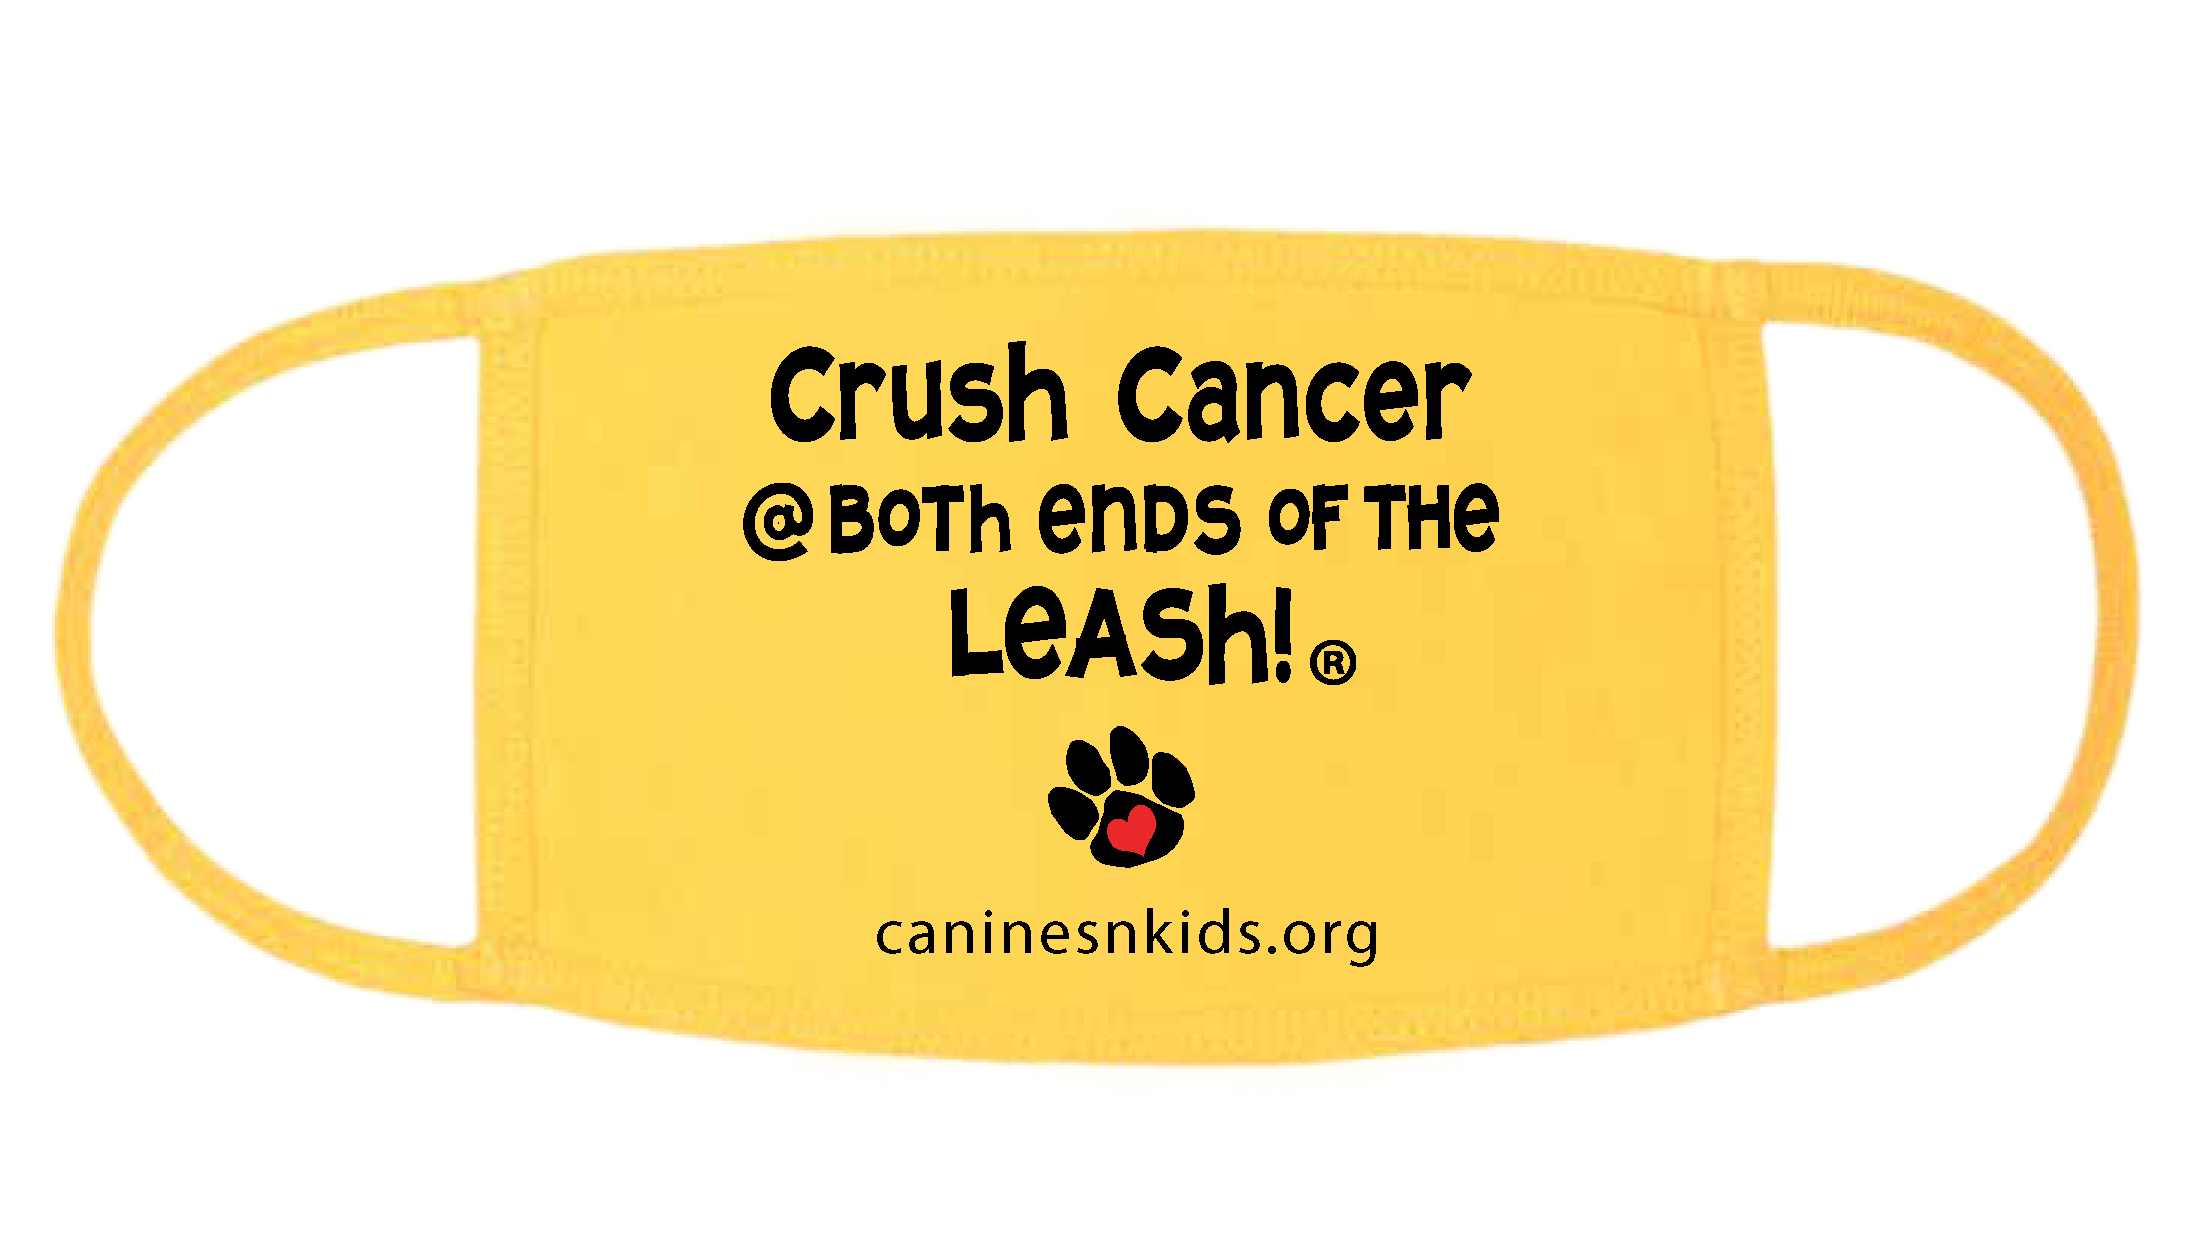 Wear a Mask and Crush Cancer @ BOTH Ends of the Leash!